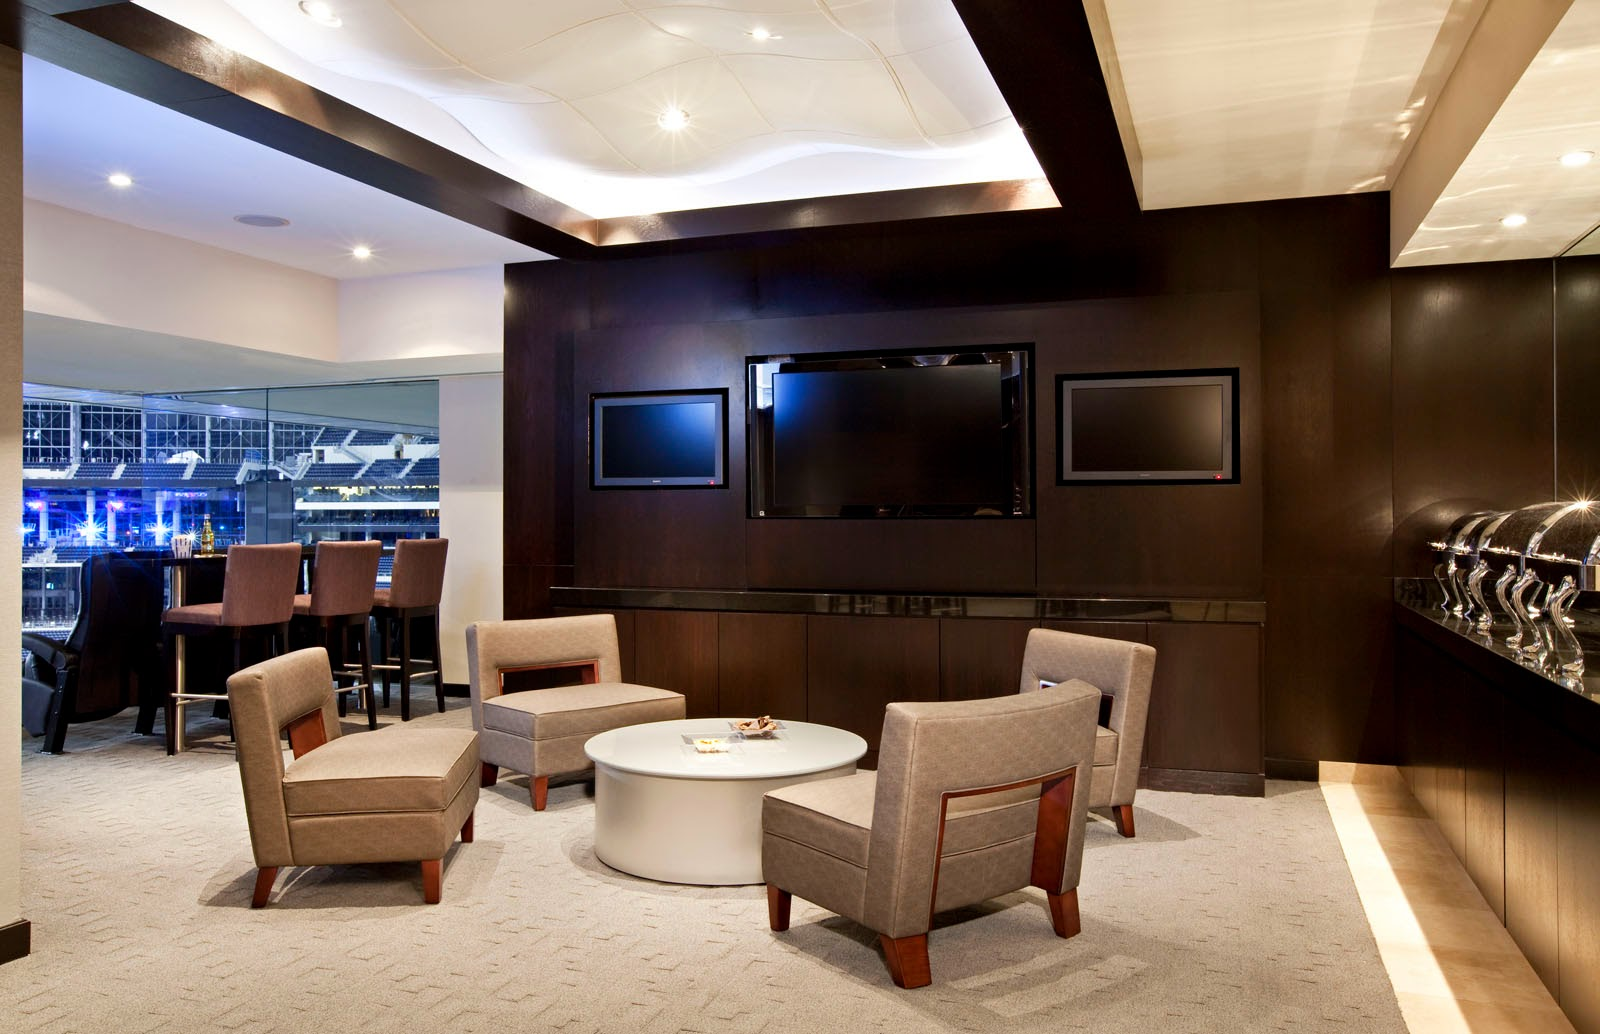 Dallas Cowboys Suite Prices, Luxury Suite Rentals, AT&T Stadium